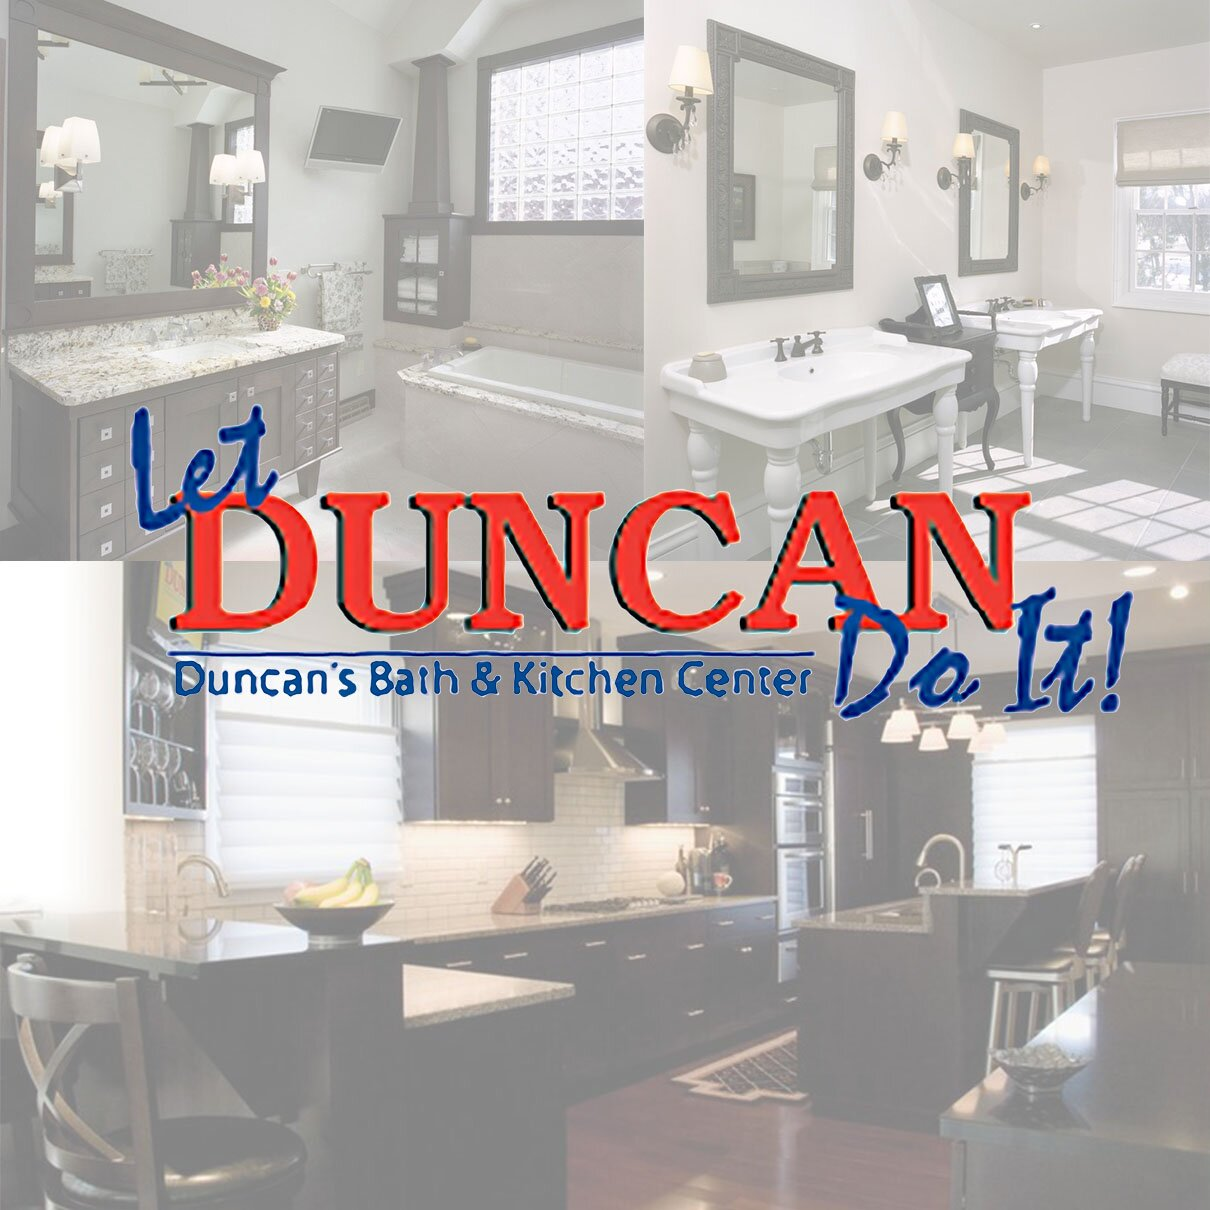 Let Duncan Do It